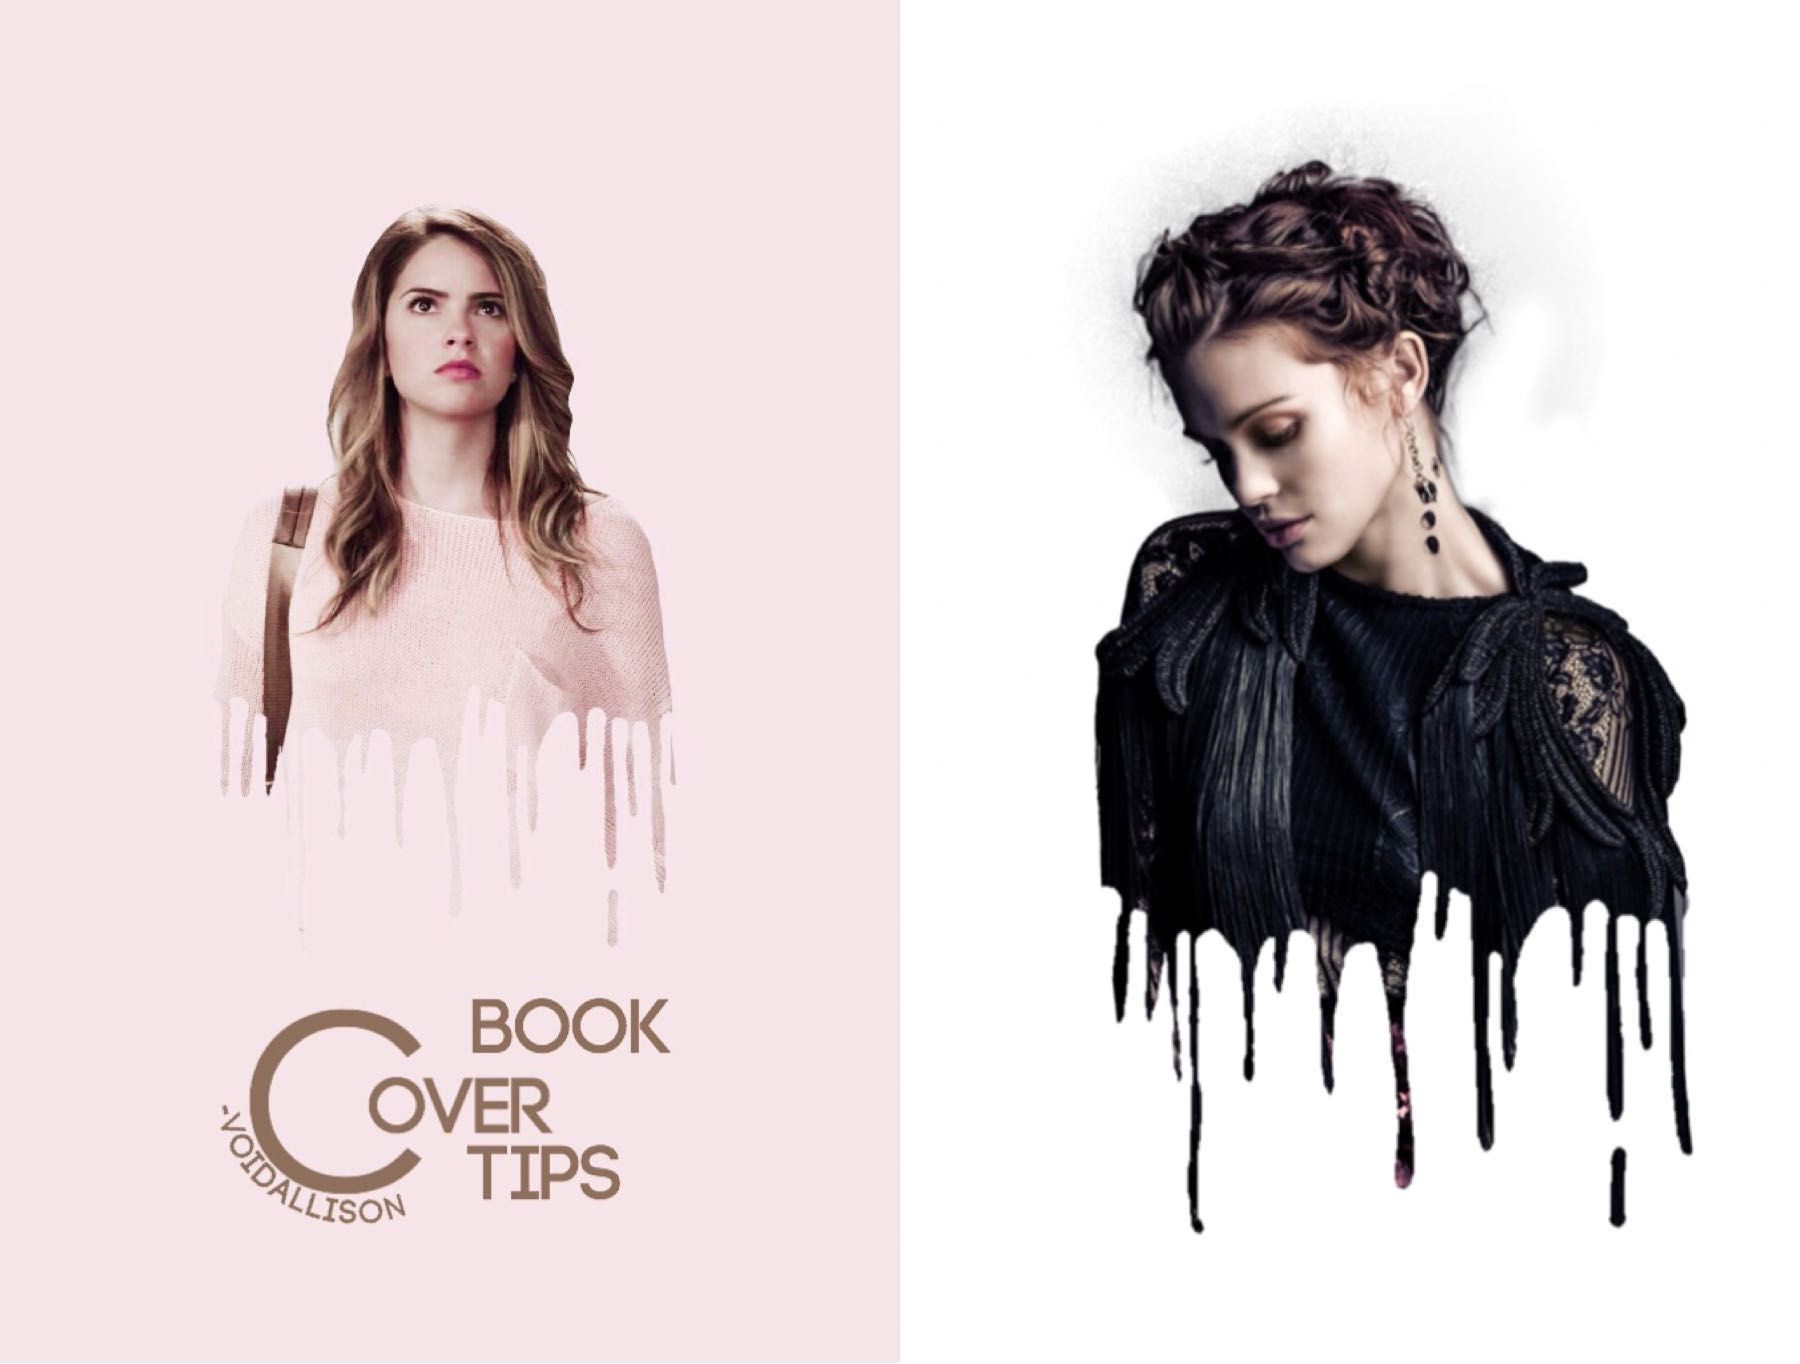 Book Cover Ideas Tumblr : Book cover tips dripping effect wattpad